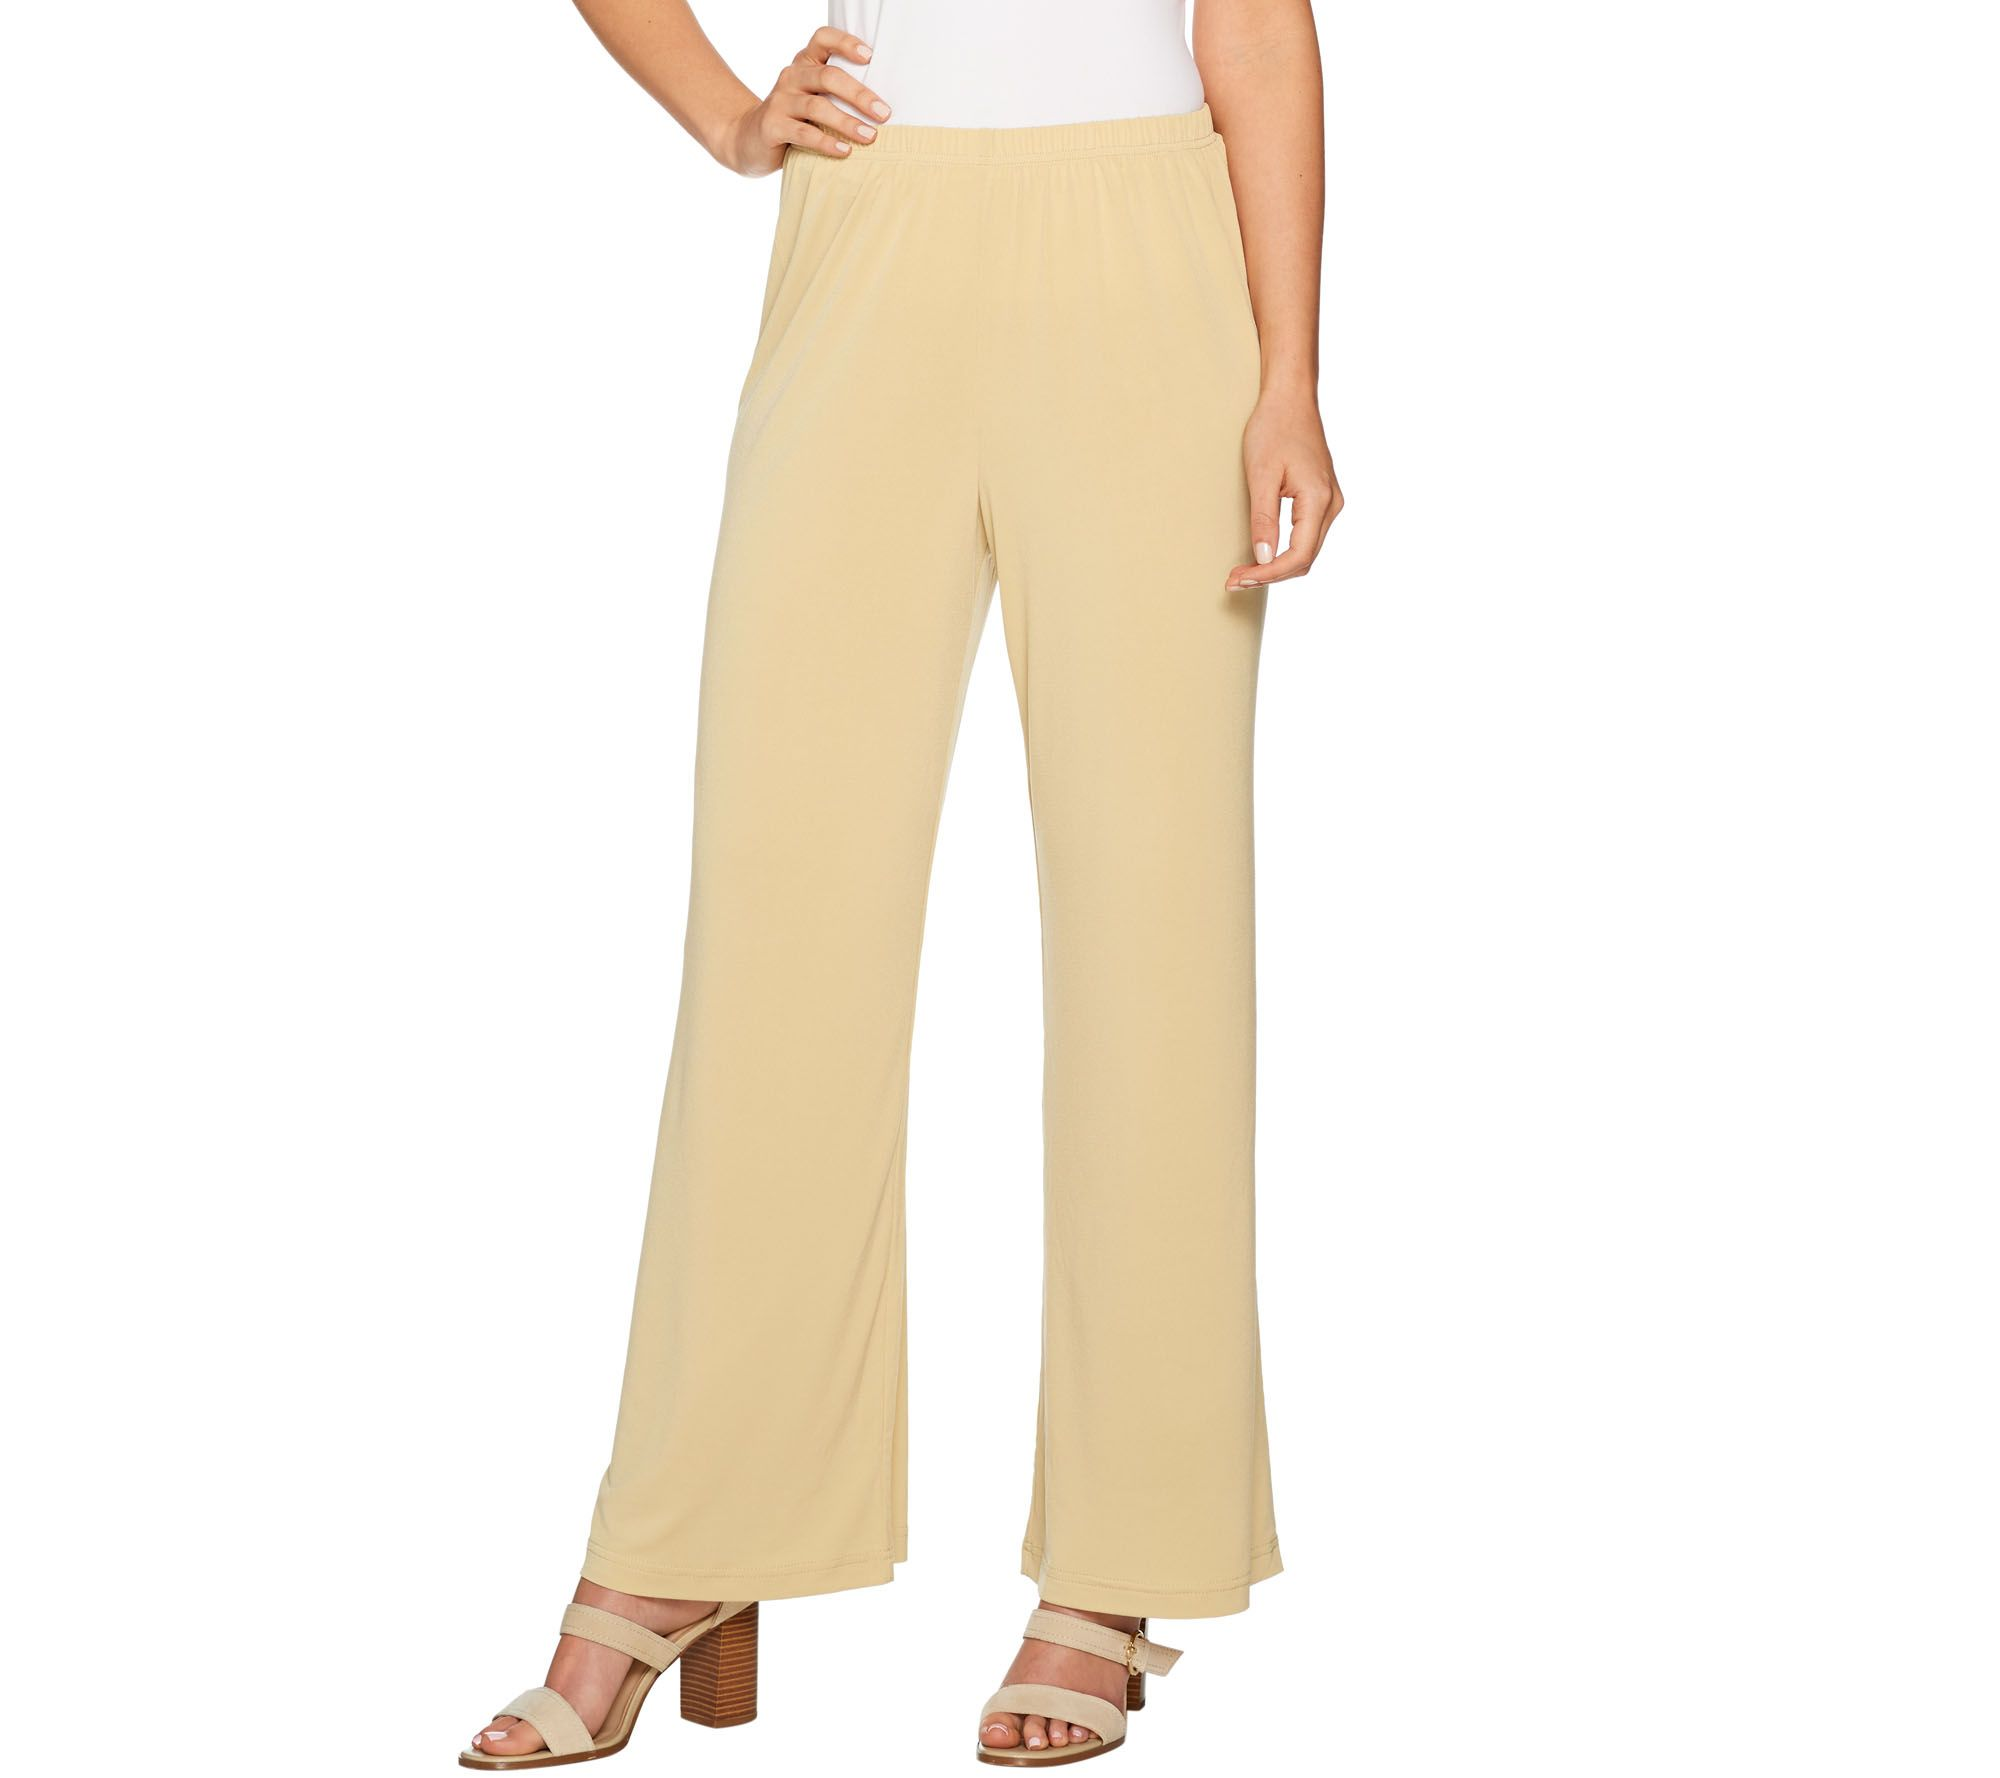 adfaf157bb9 Joan Rivers Petite Length Pull-on Jersey Knit Palazzo Pants - Page 1 ...